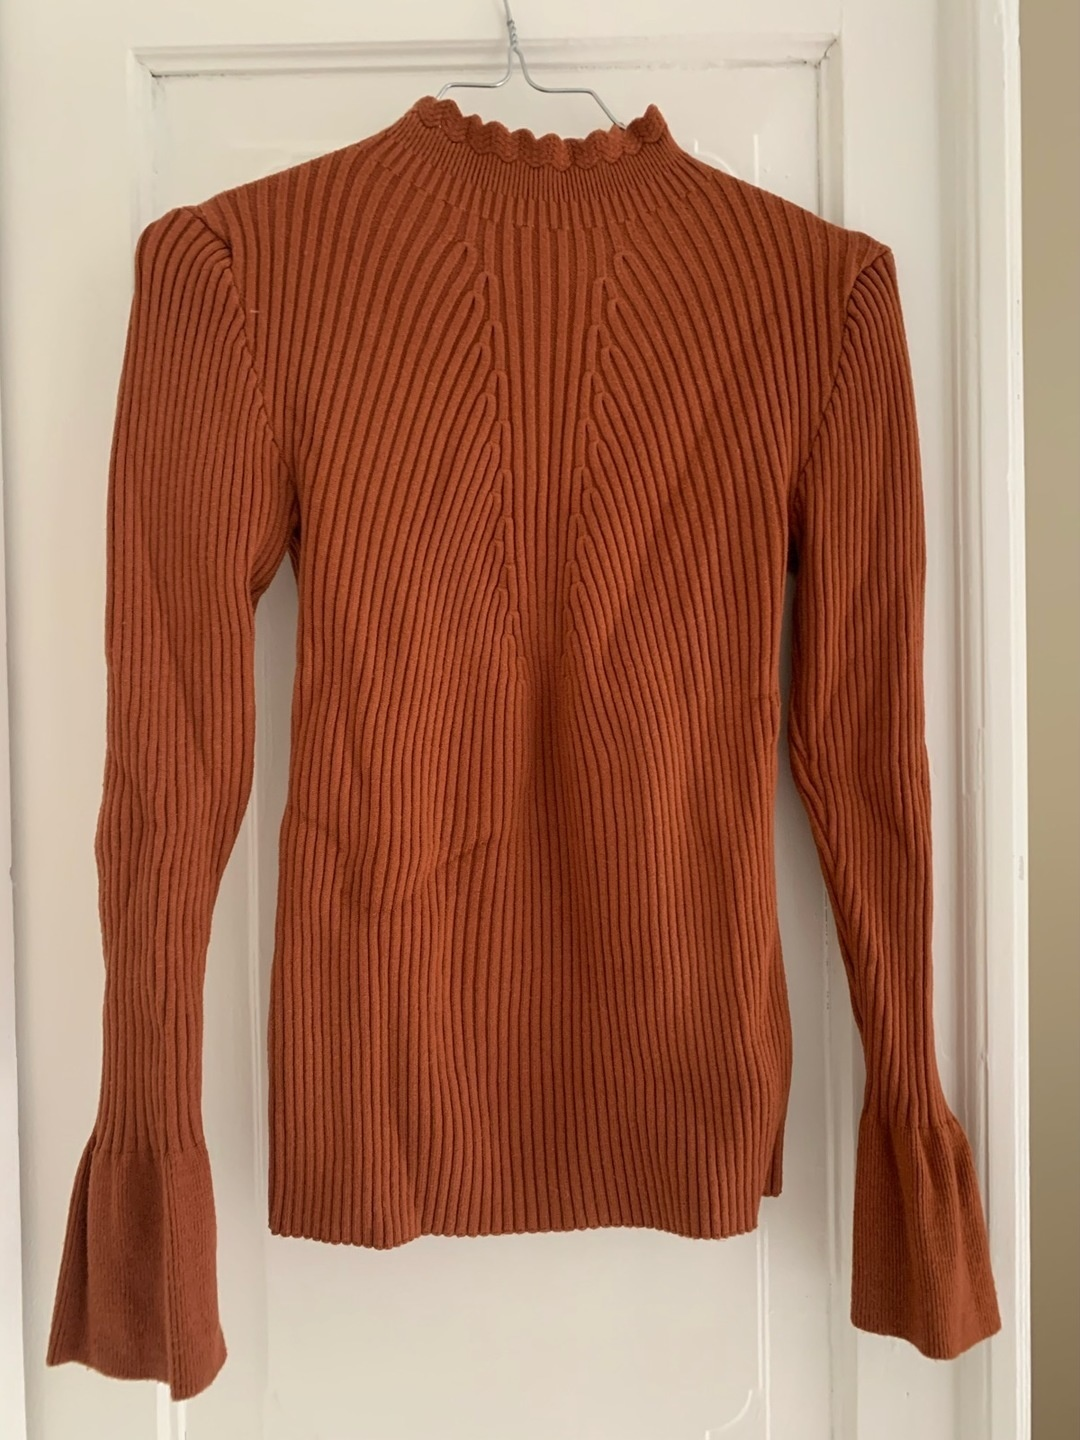 Women's jumpers & cardigans - X-COMPANY photo 1